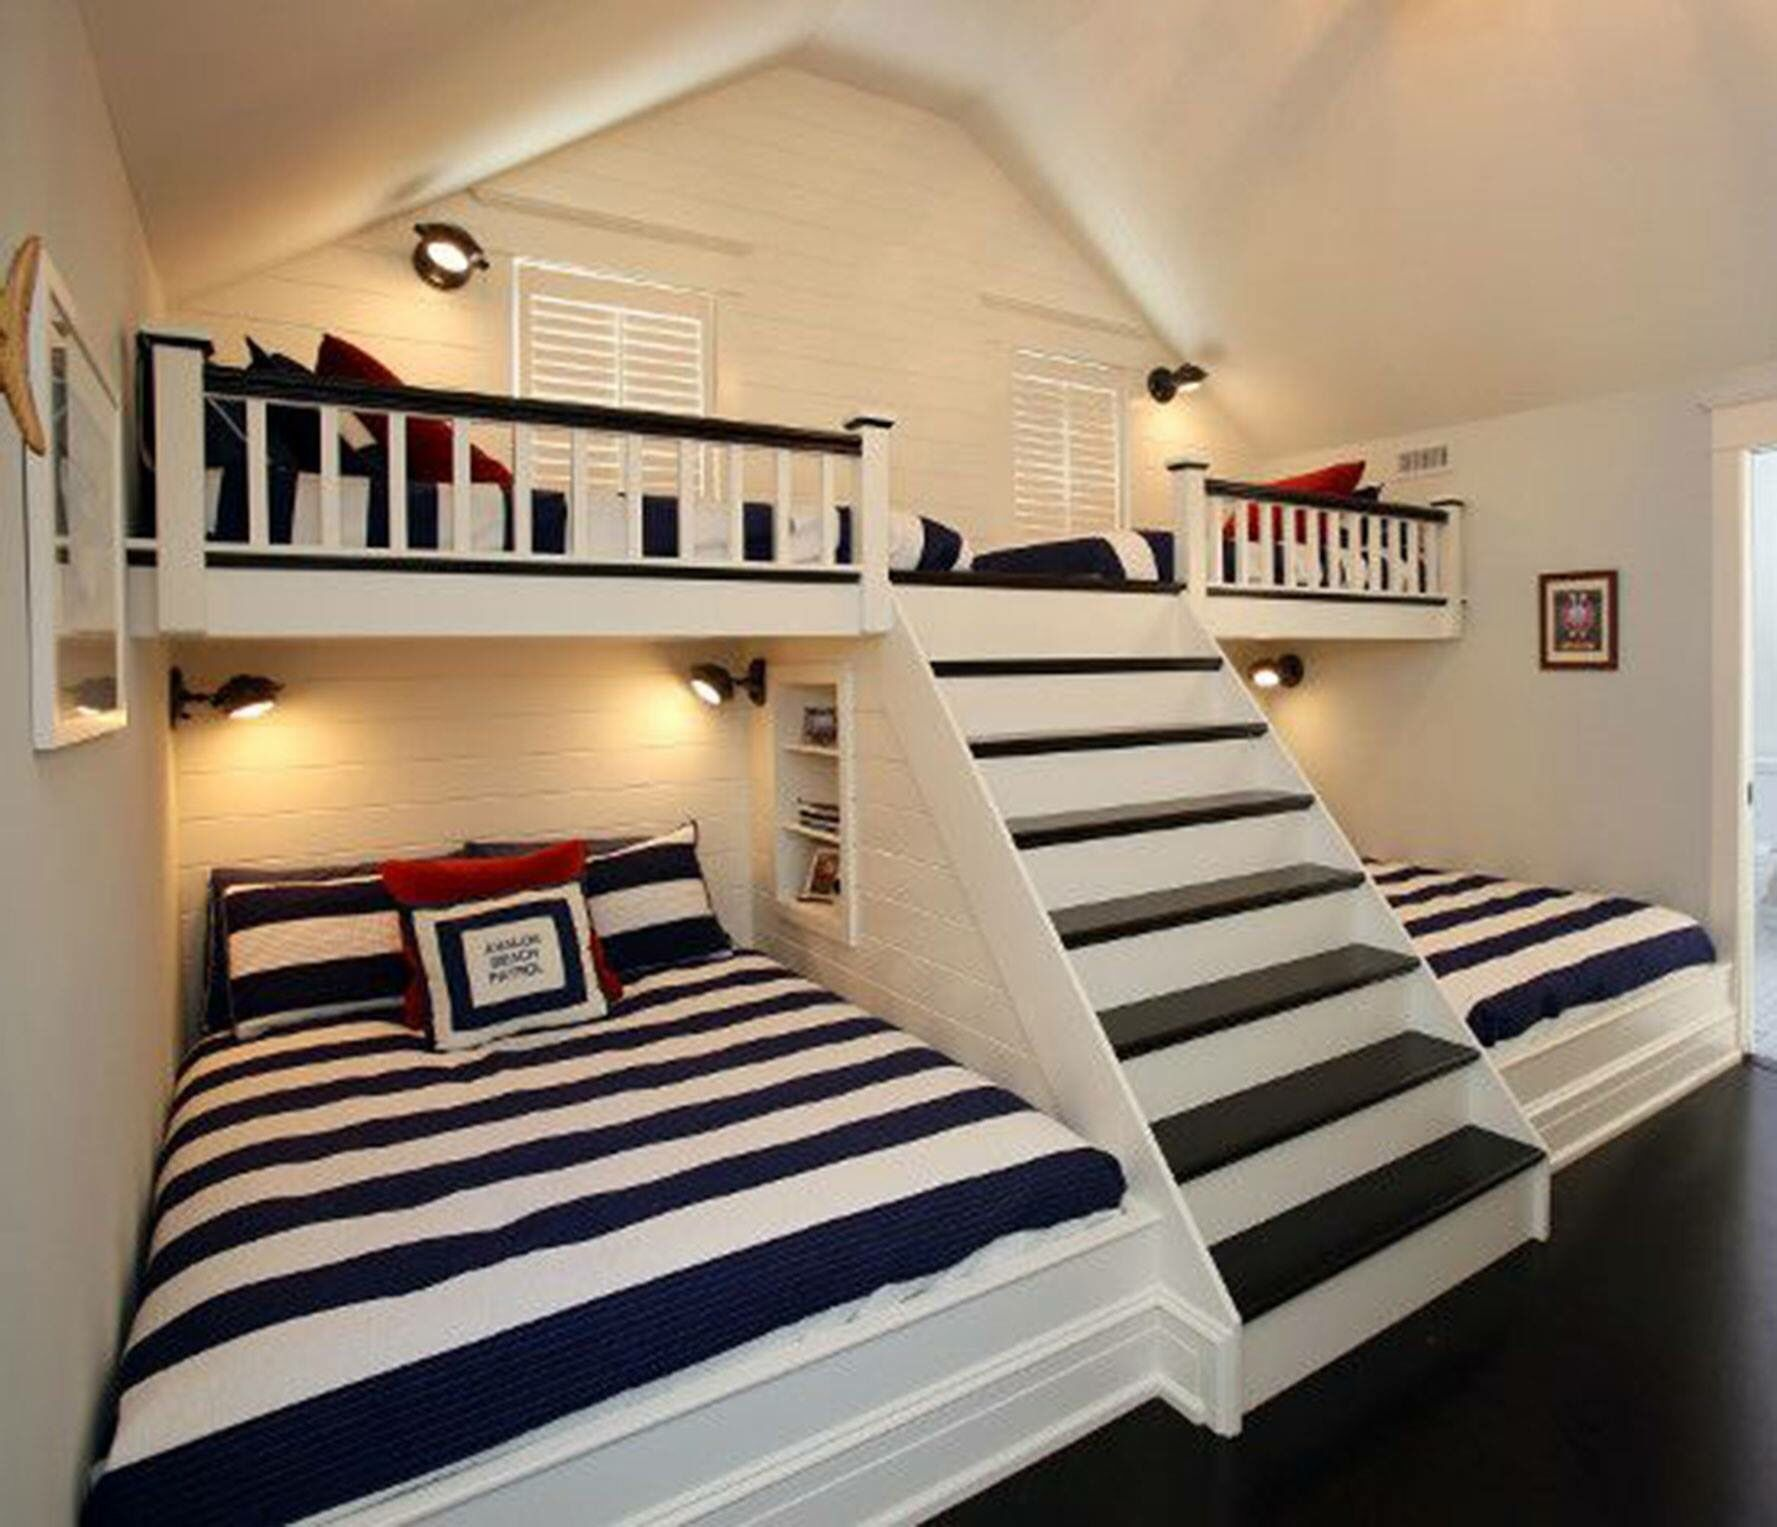 This is how you share a room. Still somewhat private and maximizing space. Need more ceiling height.